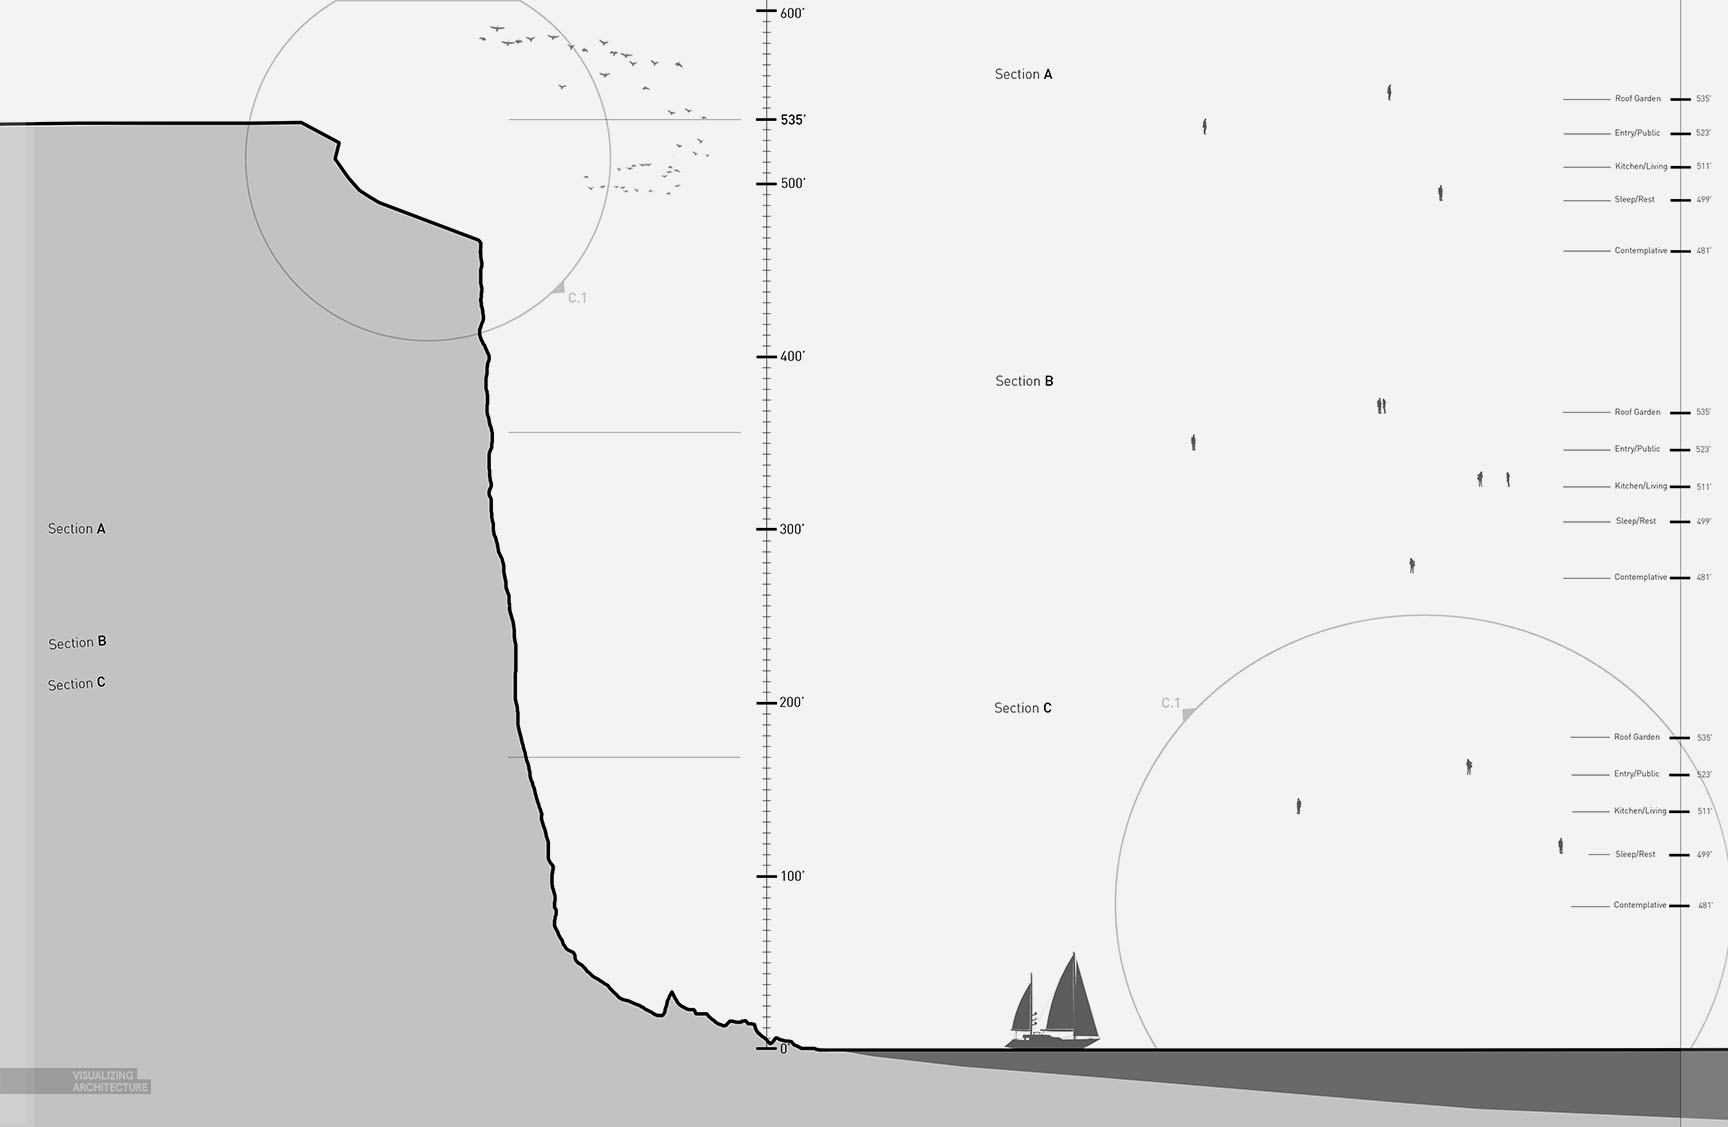 cliff_retreat_Sections_10_annotation_alexhogrefe.jpg